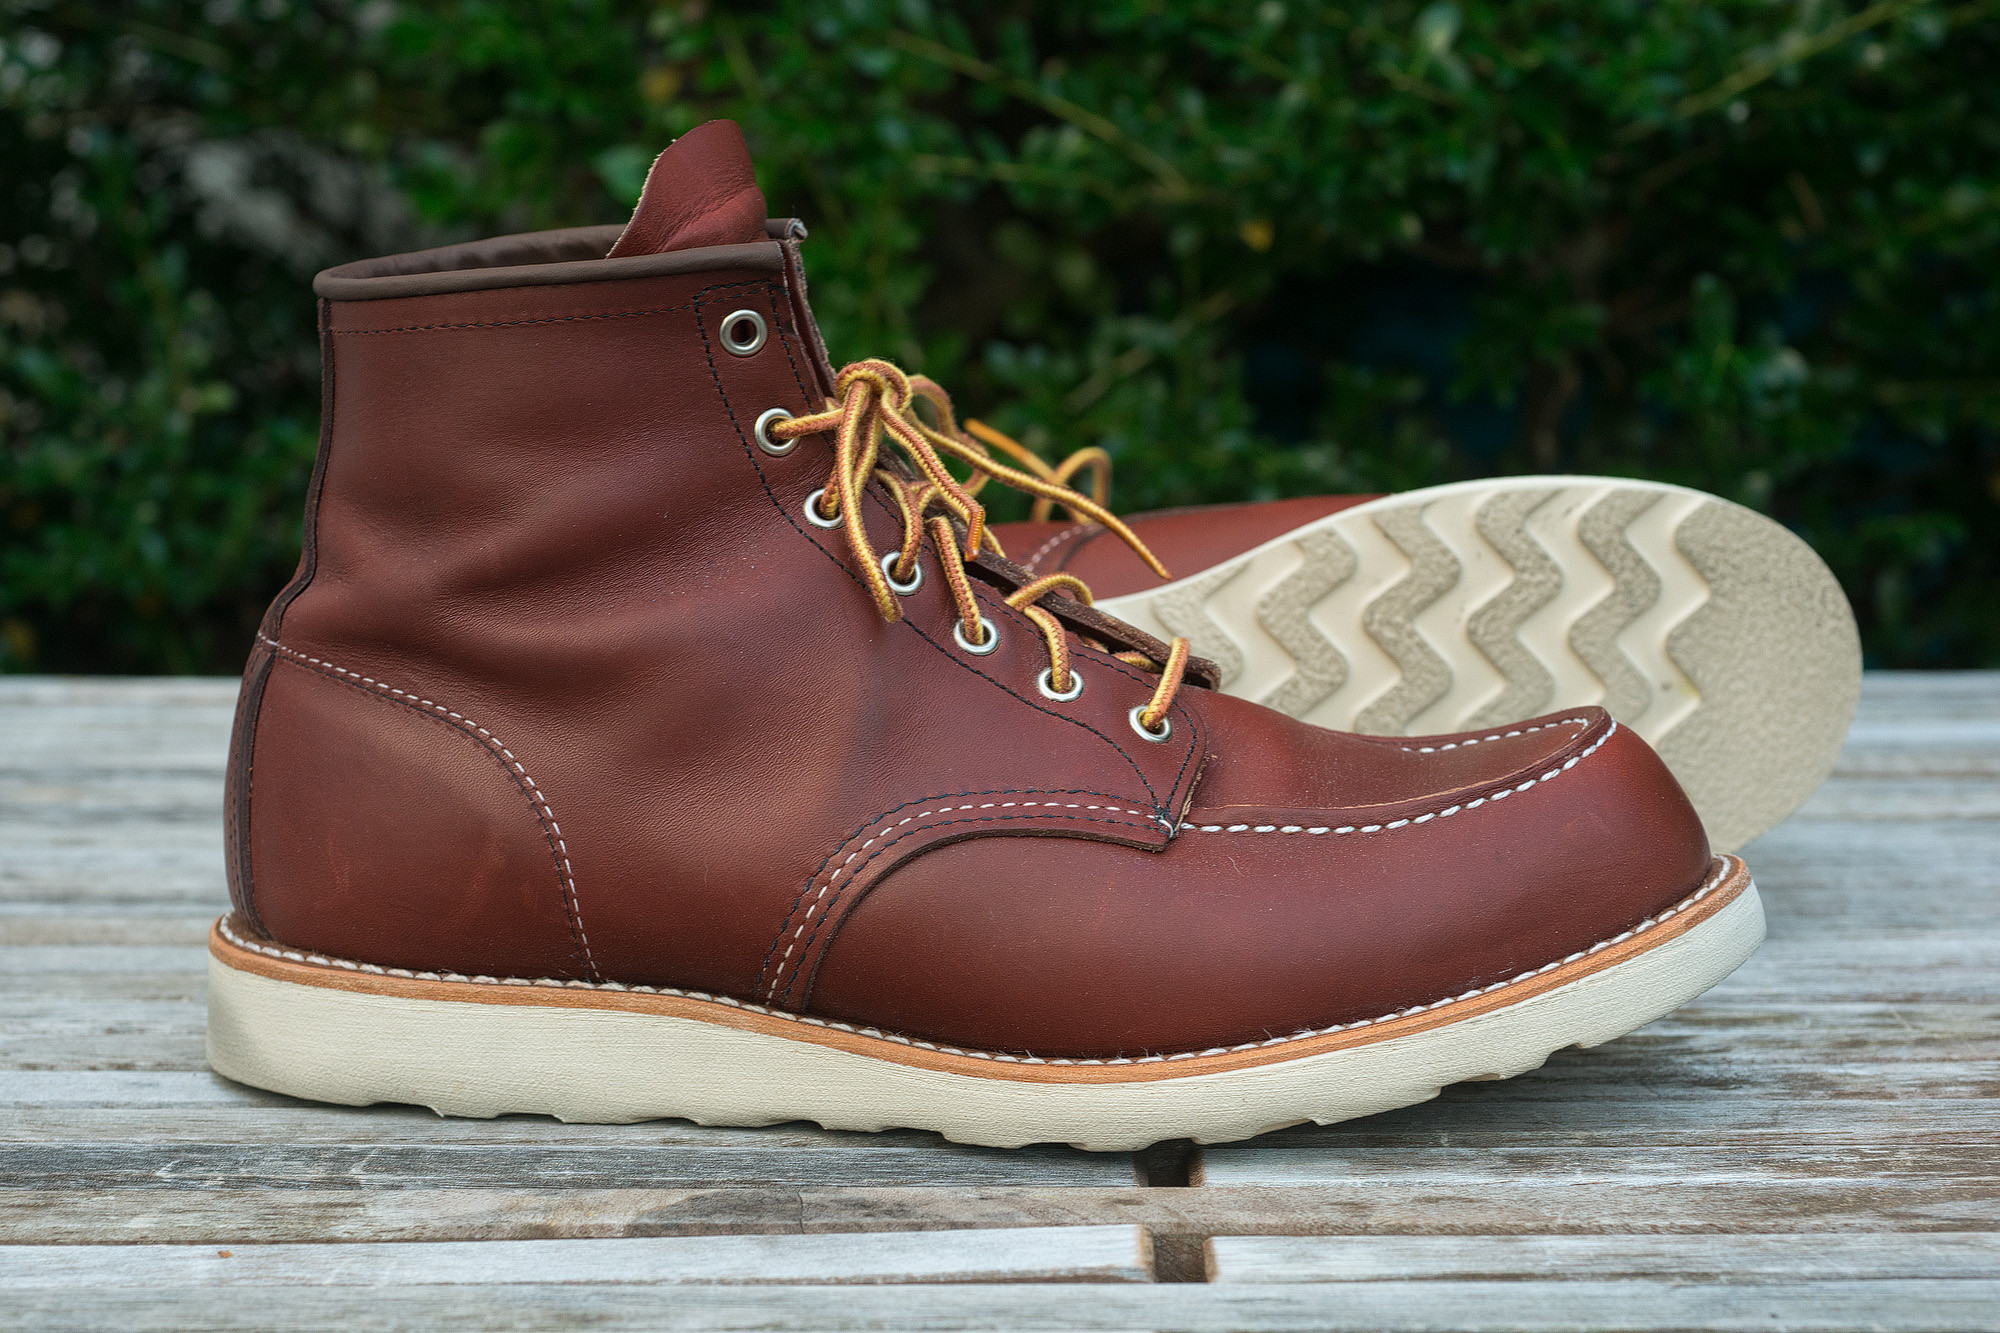 Best Red Wing Boots a4e3CWuI